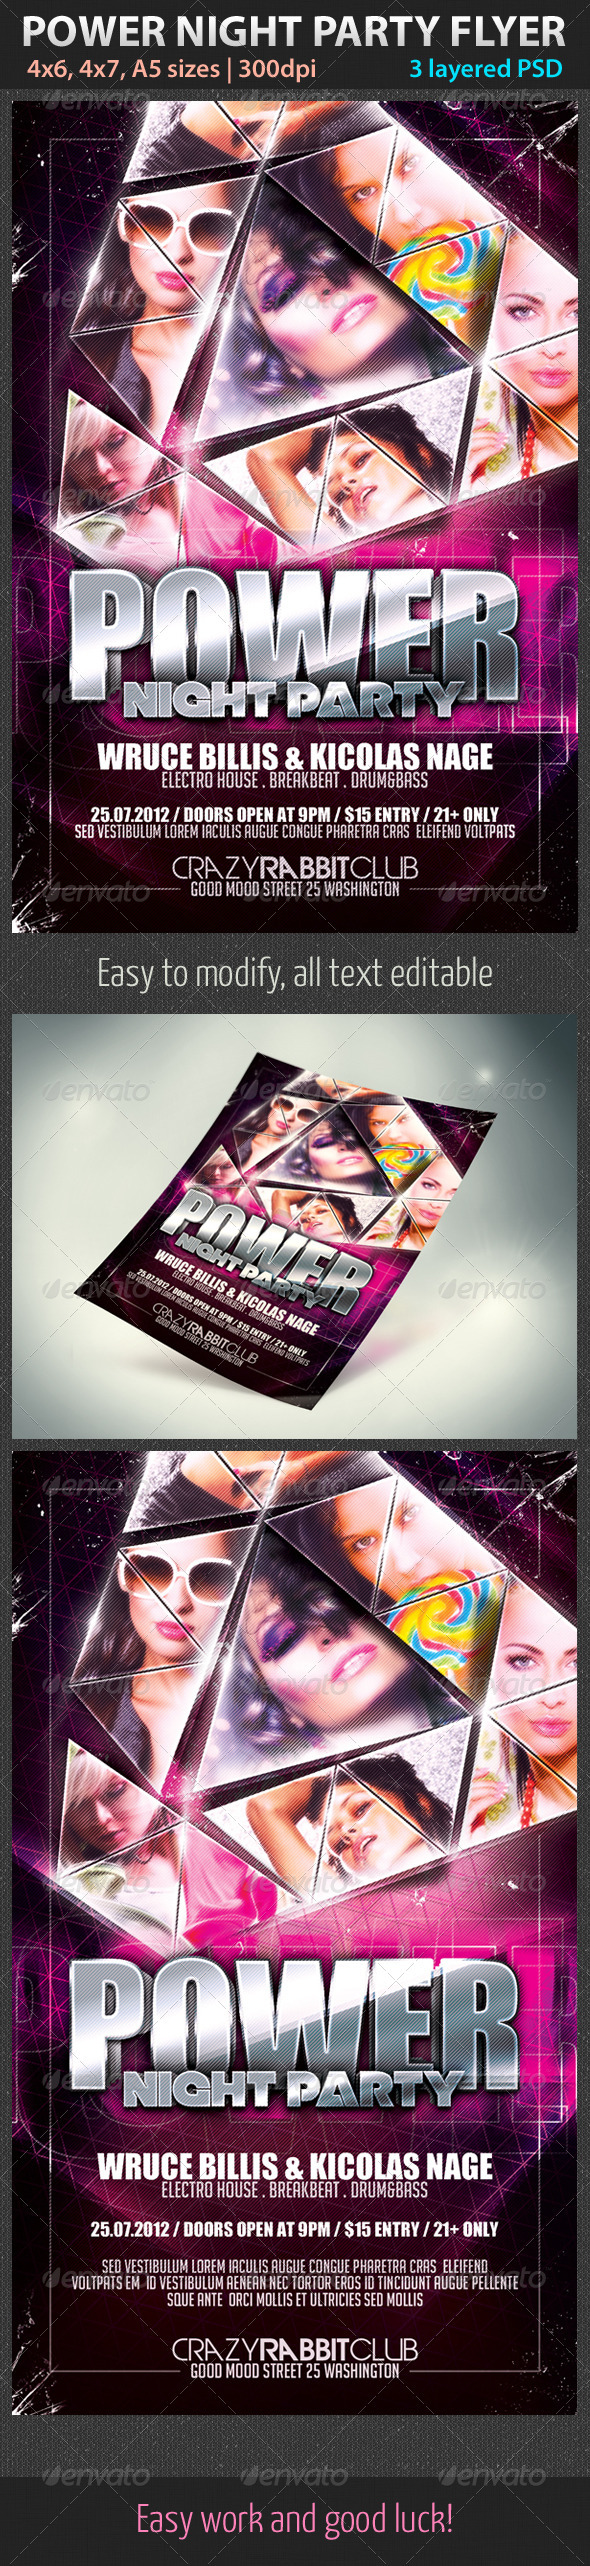 Power Night Party Flyer - Clubs & Parties Events